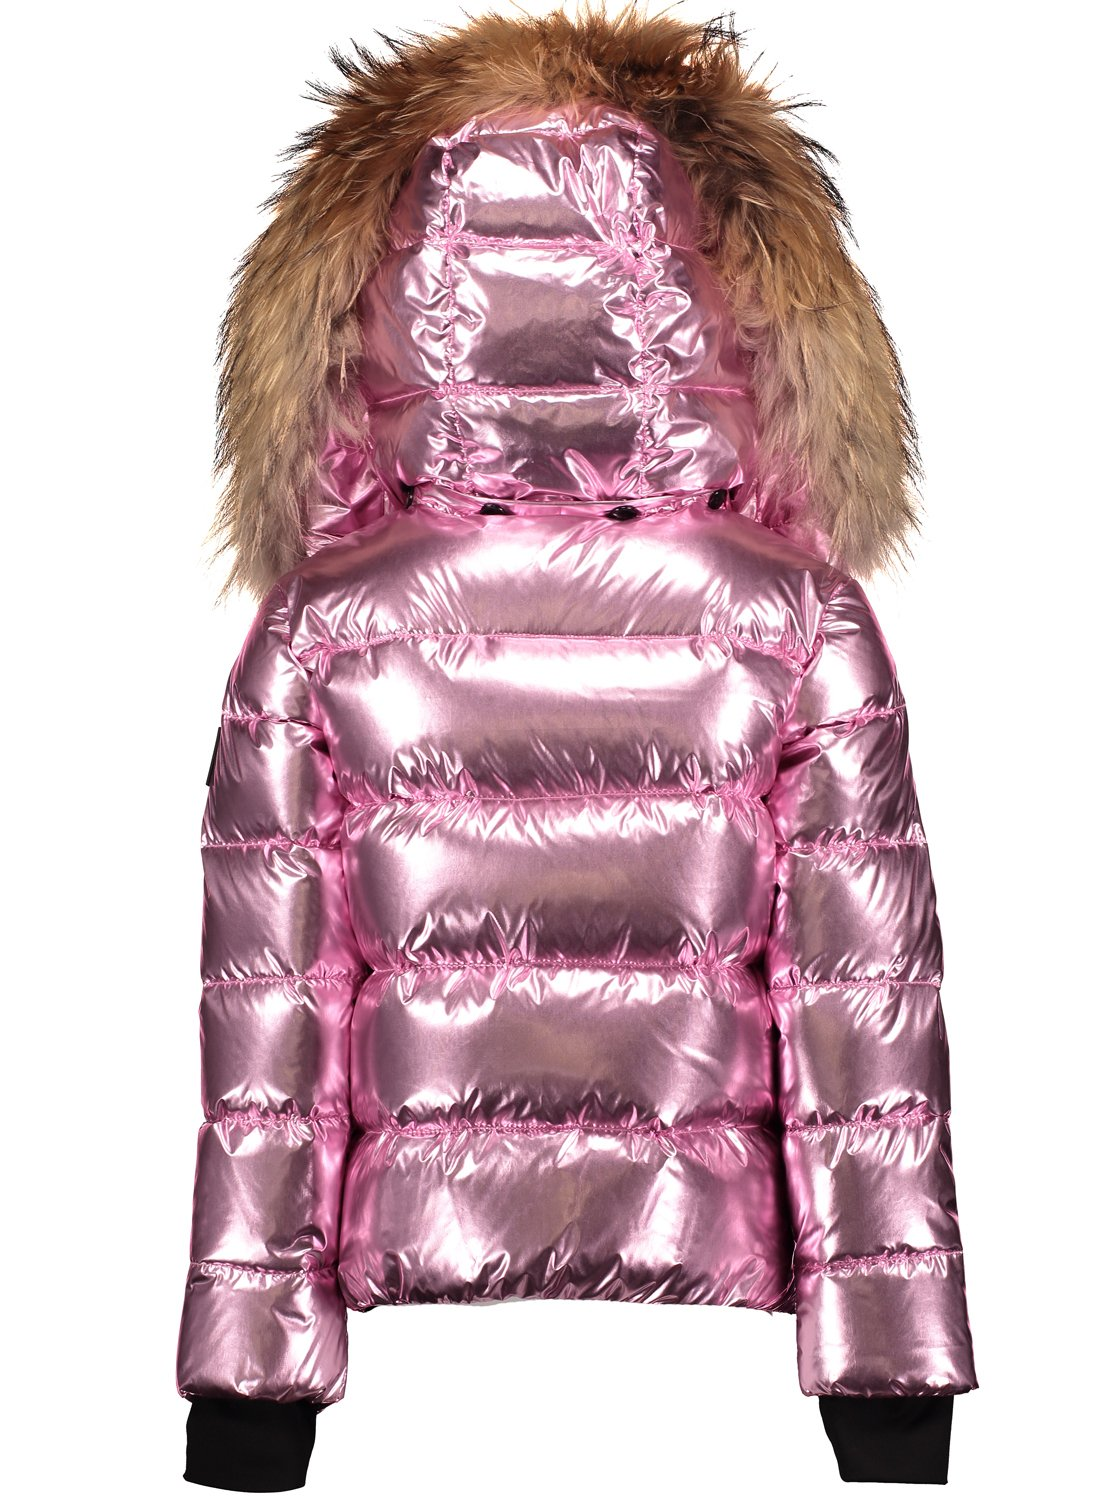 TODDLER GIRLS FUR ANNABELLE TODDLER GIRLS FUR ANNABELLE - SAM. New York Sam nyc jacket